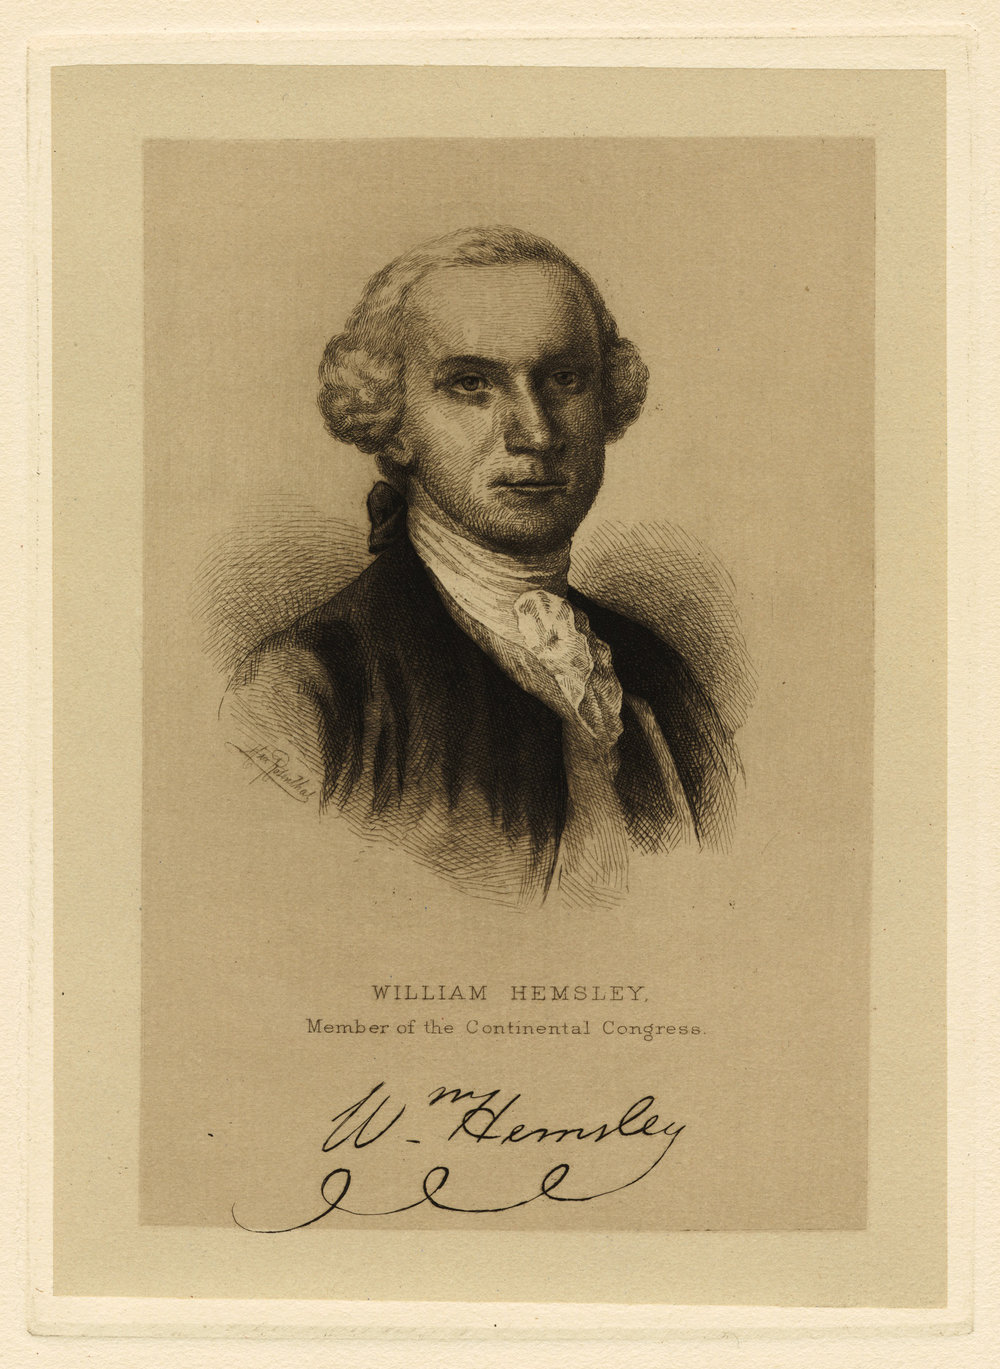 Col. william hemsley - photo courtesy of the new york public library's digital collections.